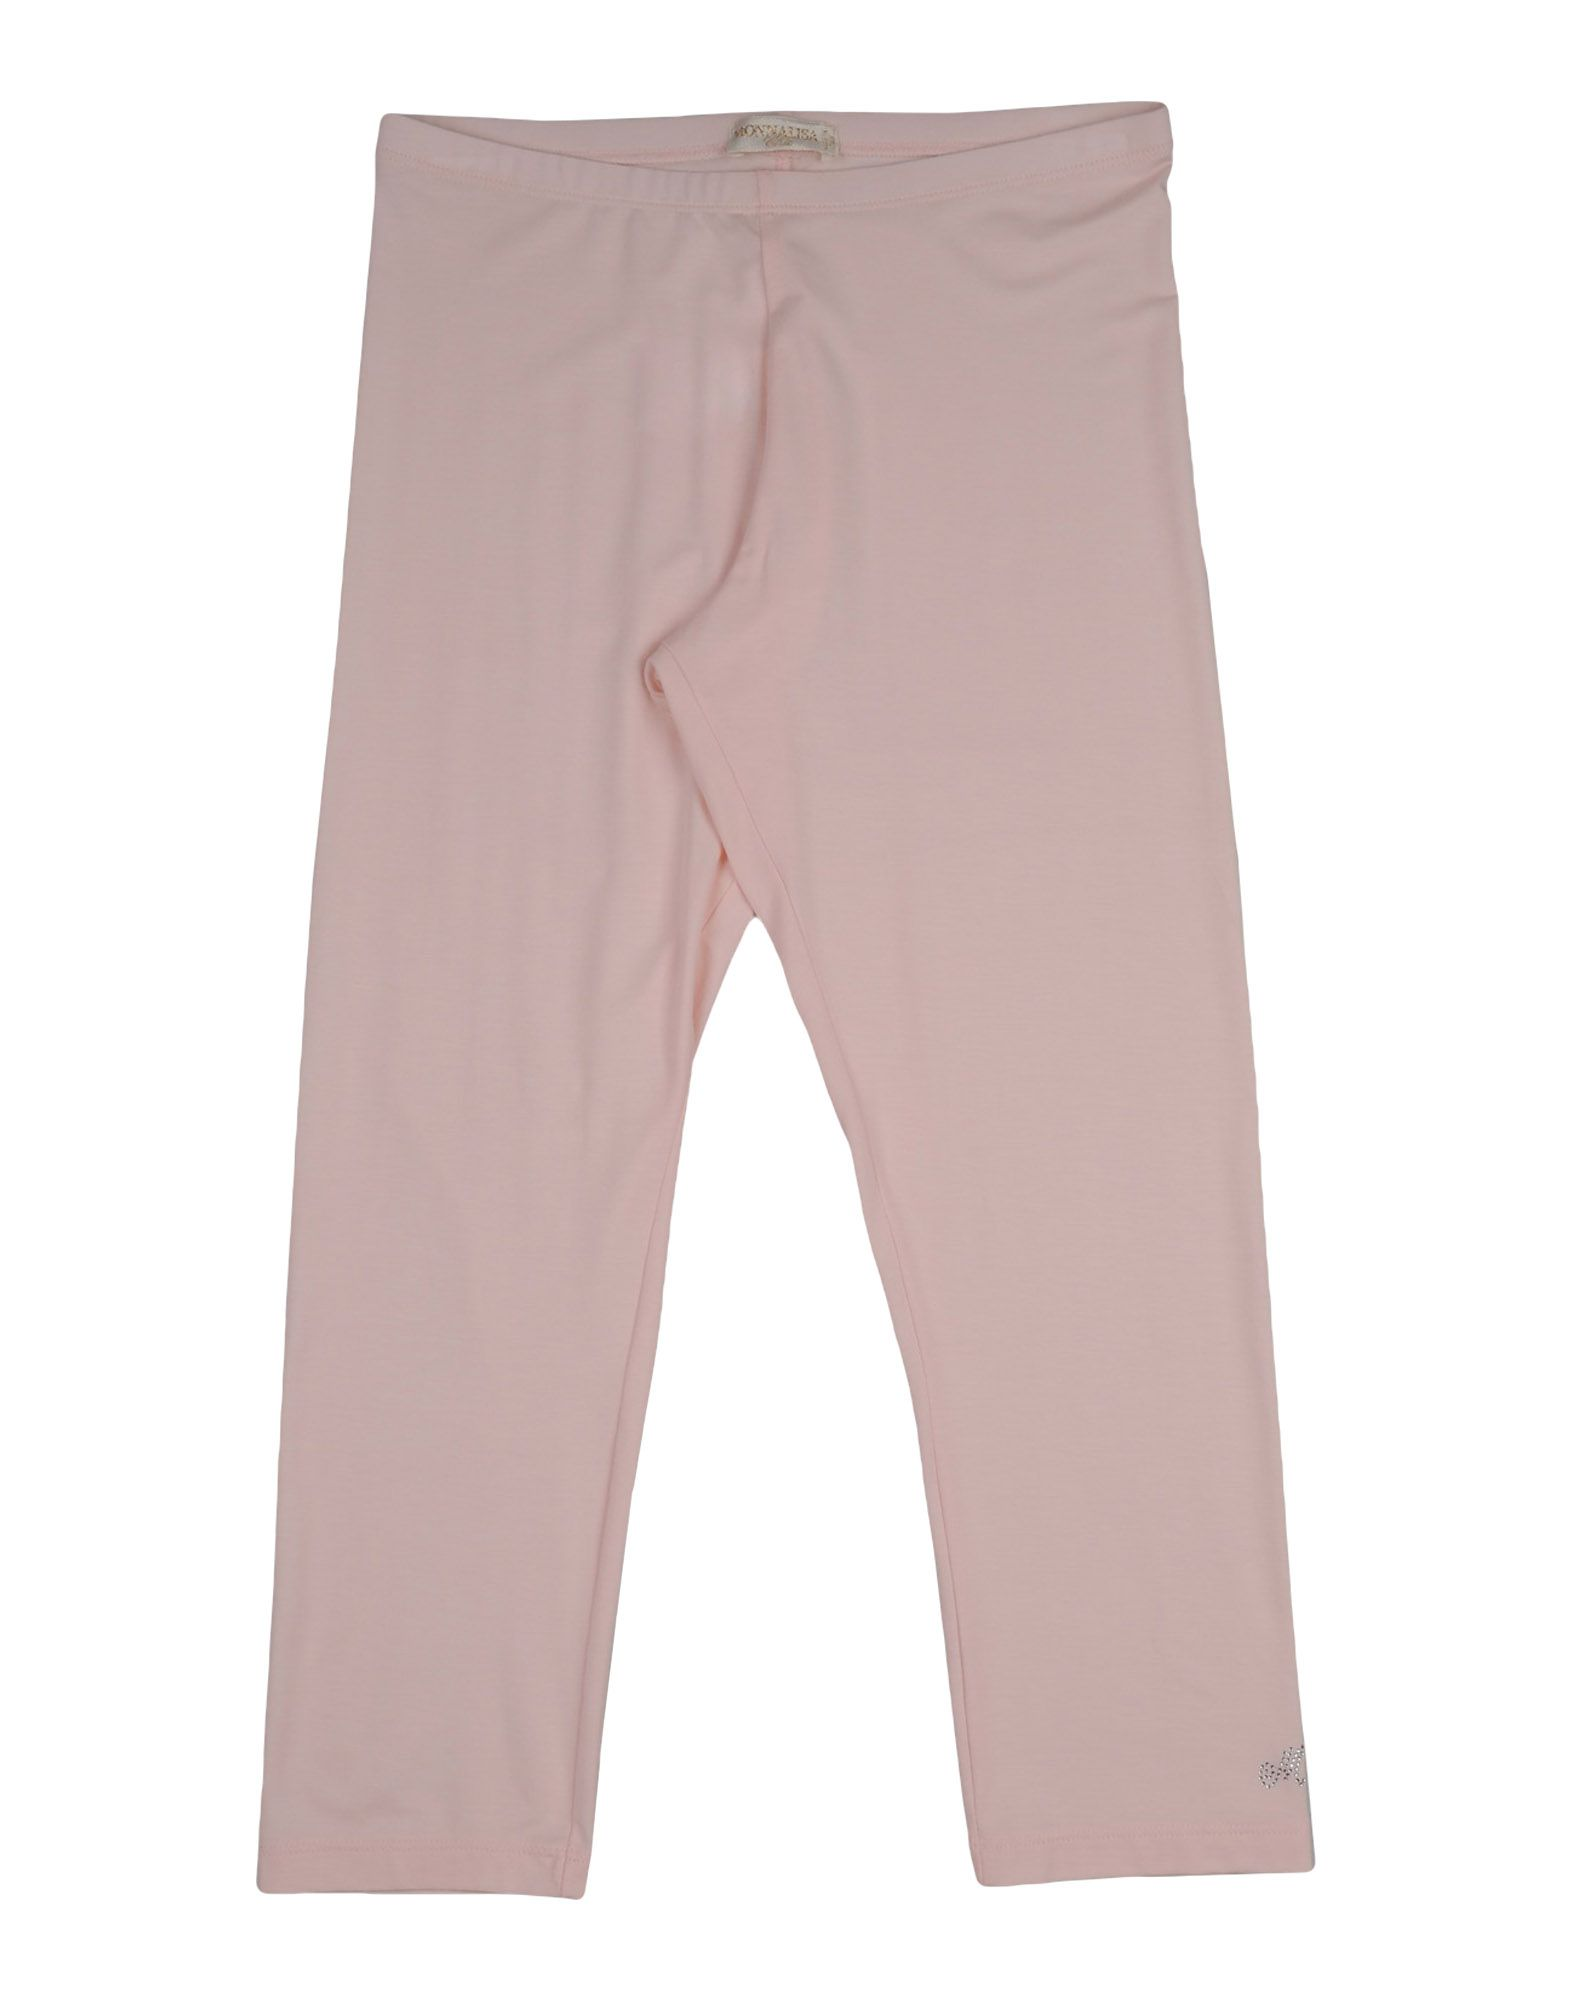 MONNALISA CHIC Leggings in Pink